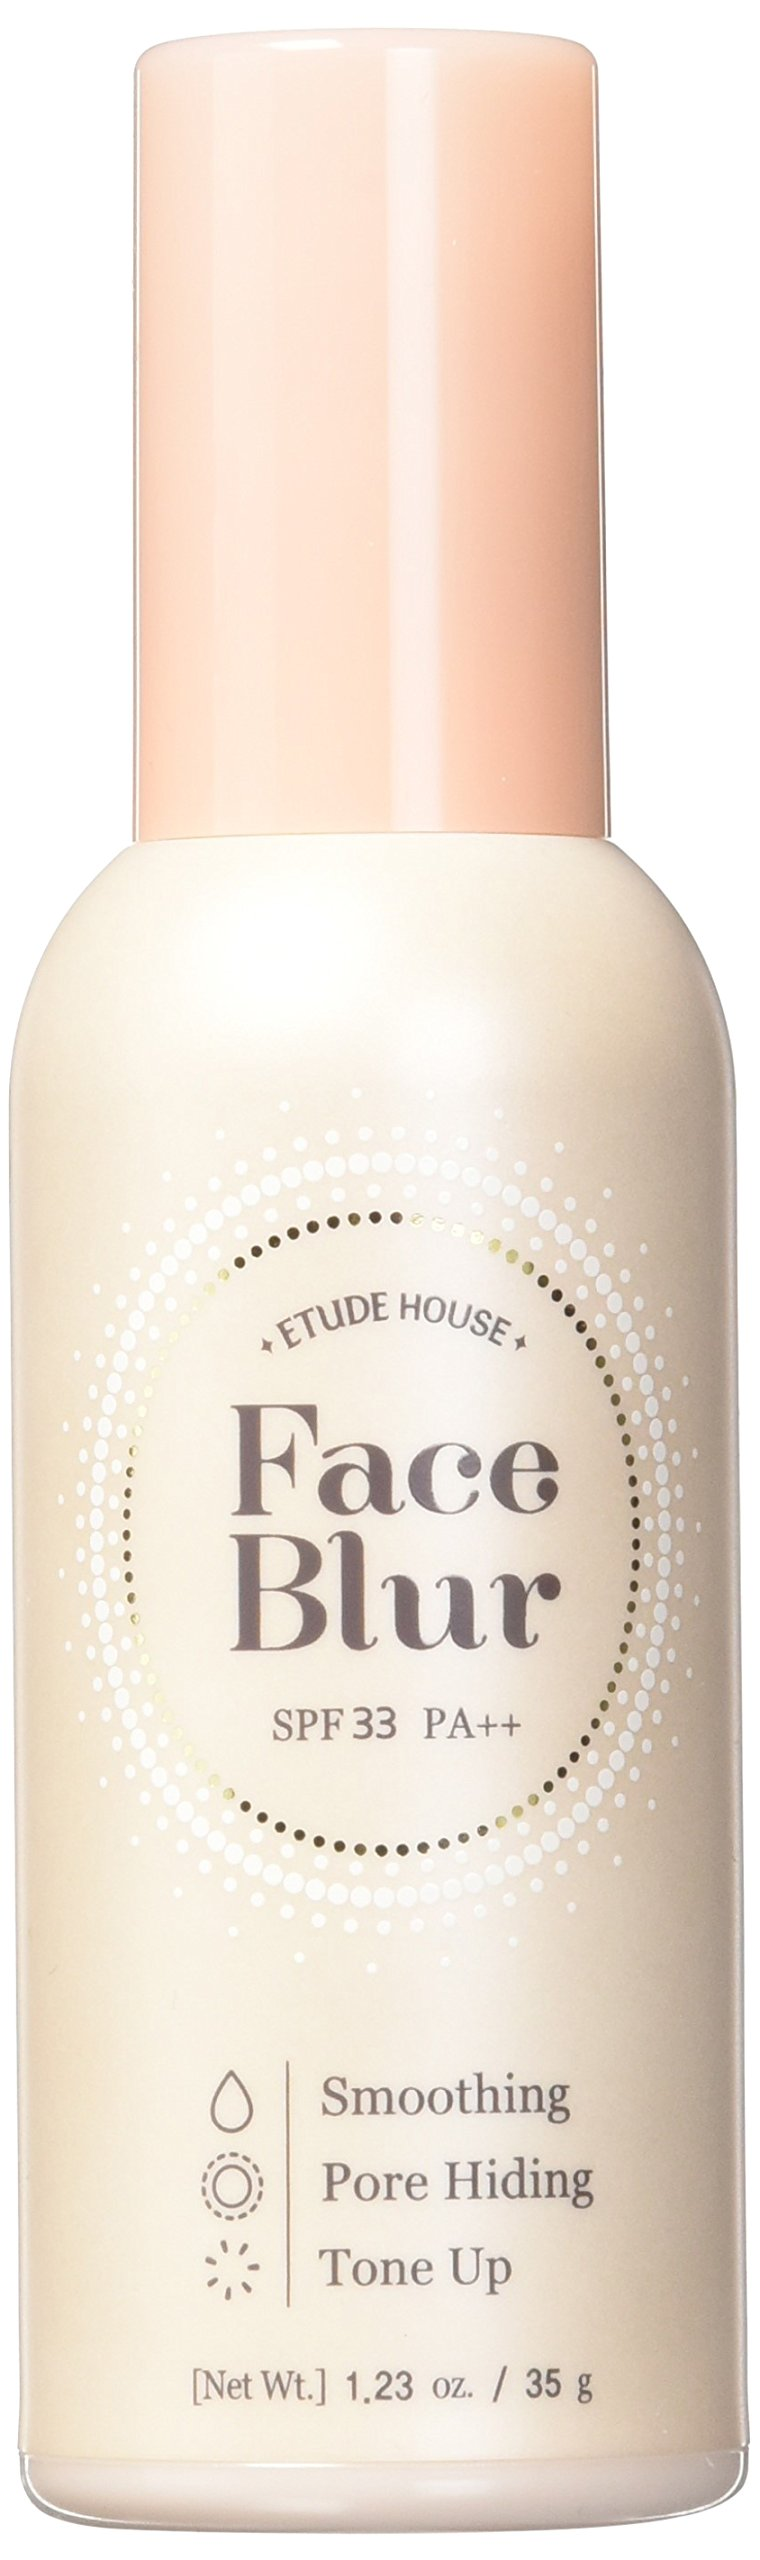 Etude House Beauty Shot Face Blur SPF33/PA Plus,1.23 Ounce